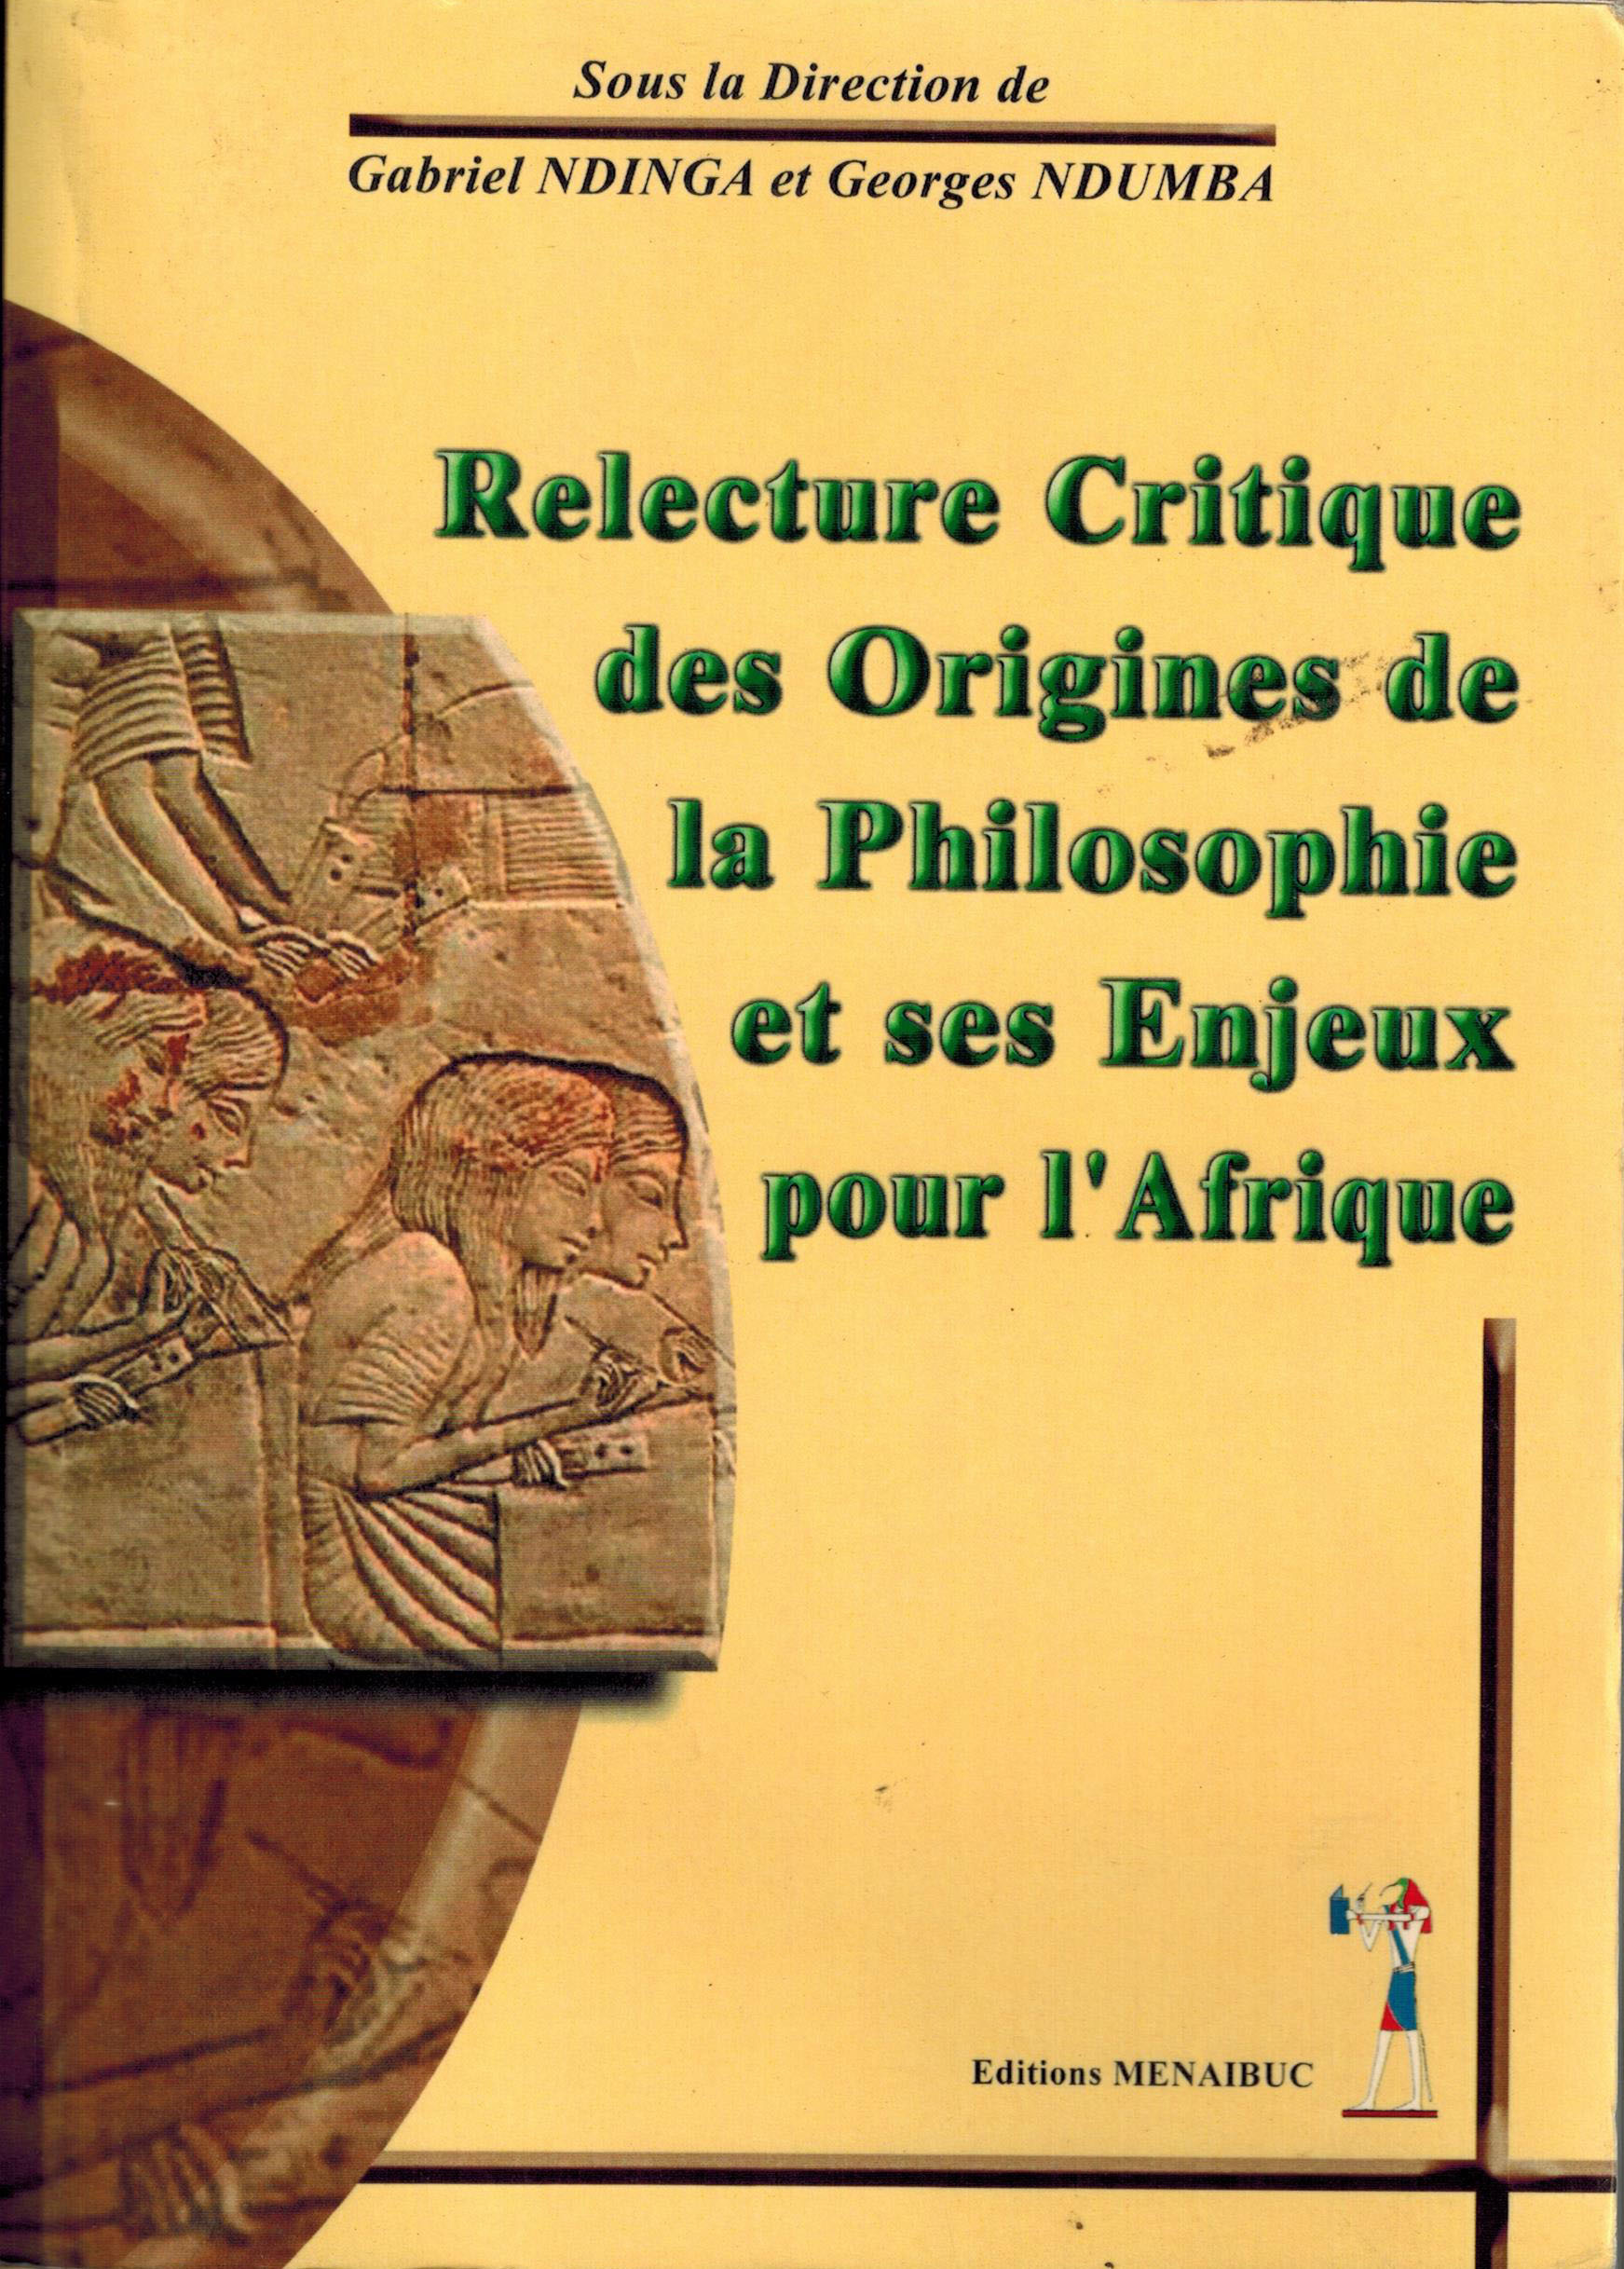 RELECTURE CRITIQUE DES ORIGINES DE LA PHILOSOPHIE